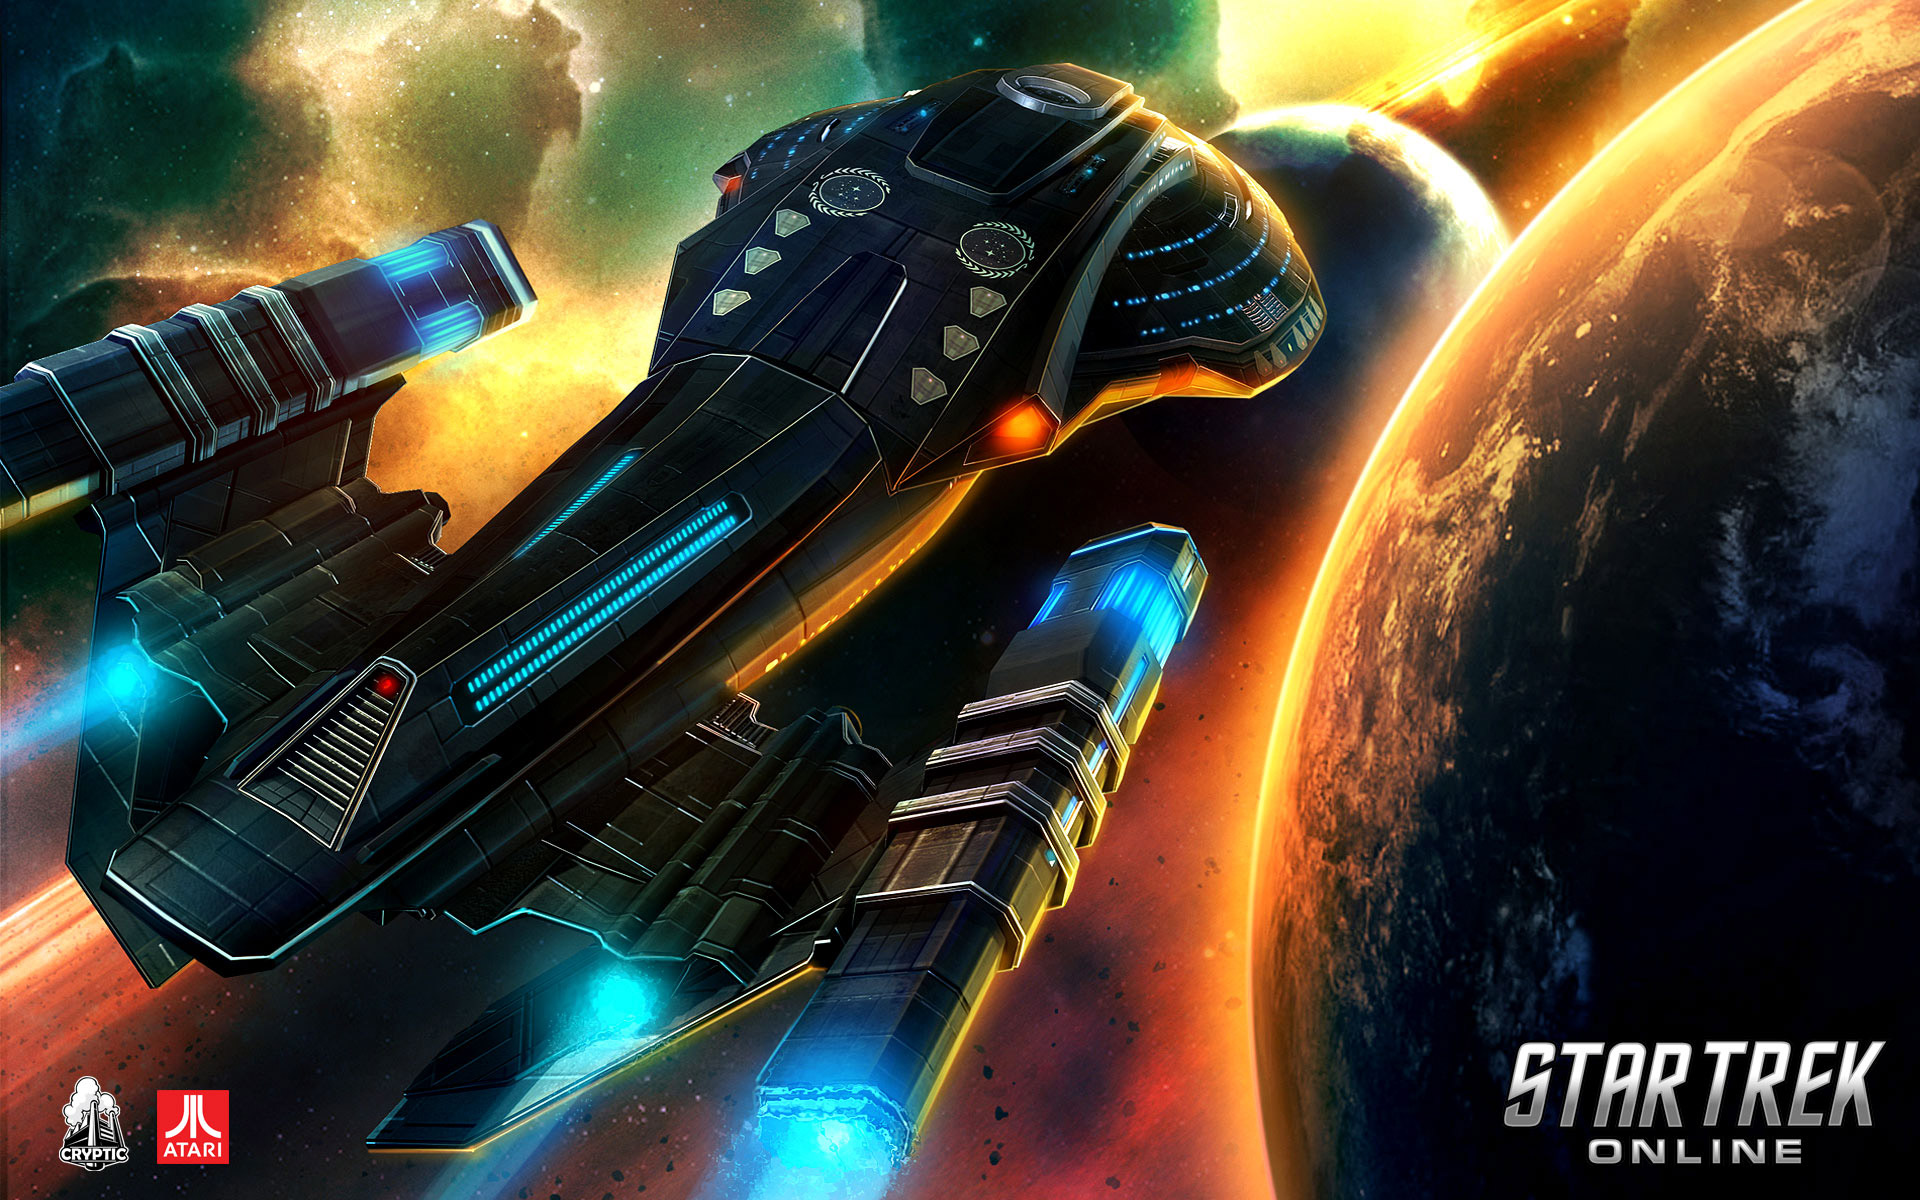 Star Trek Online Game 2116.8 Kb